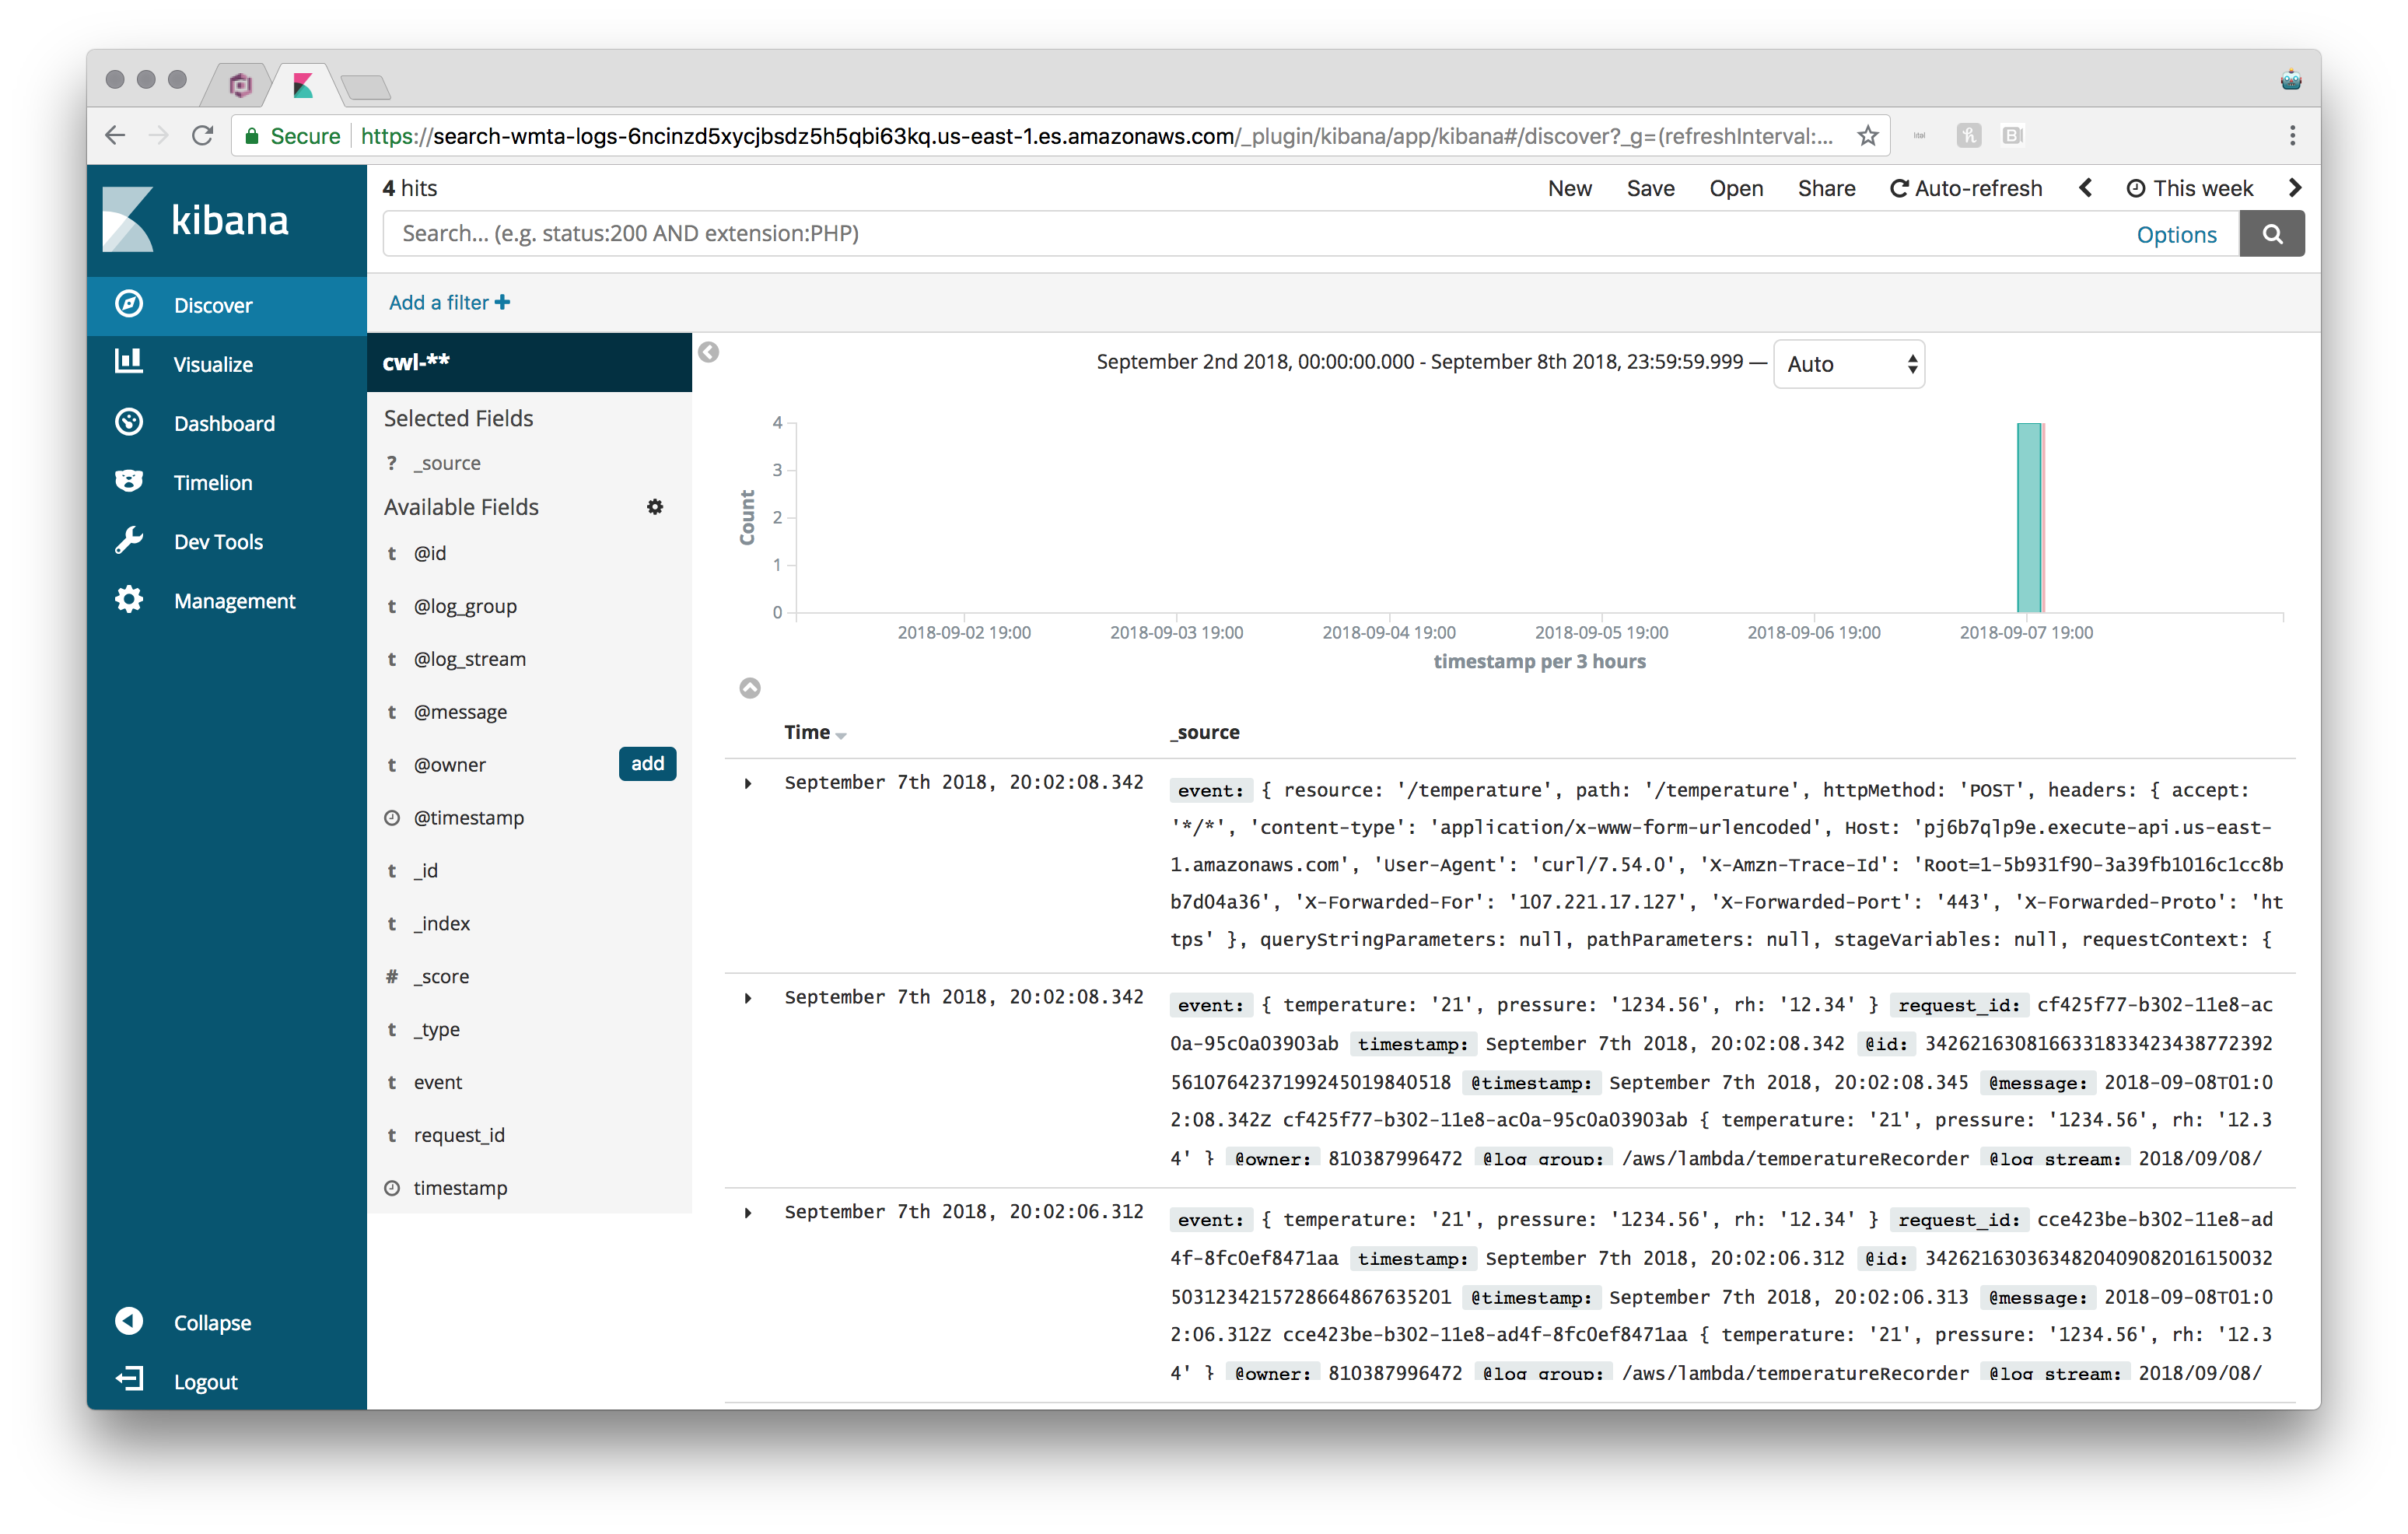 CloudWatch + ElasticSearch + Cognito